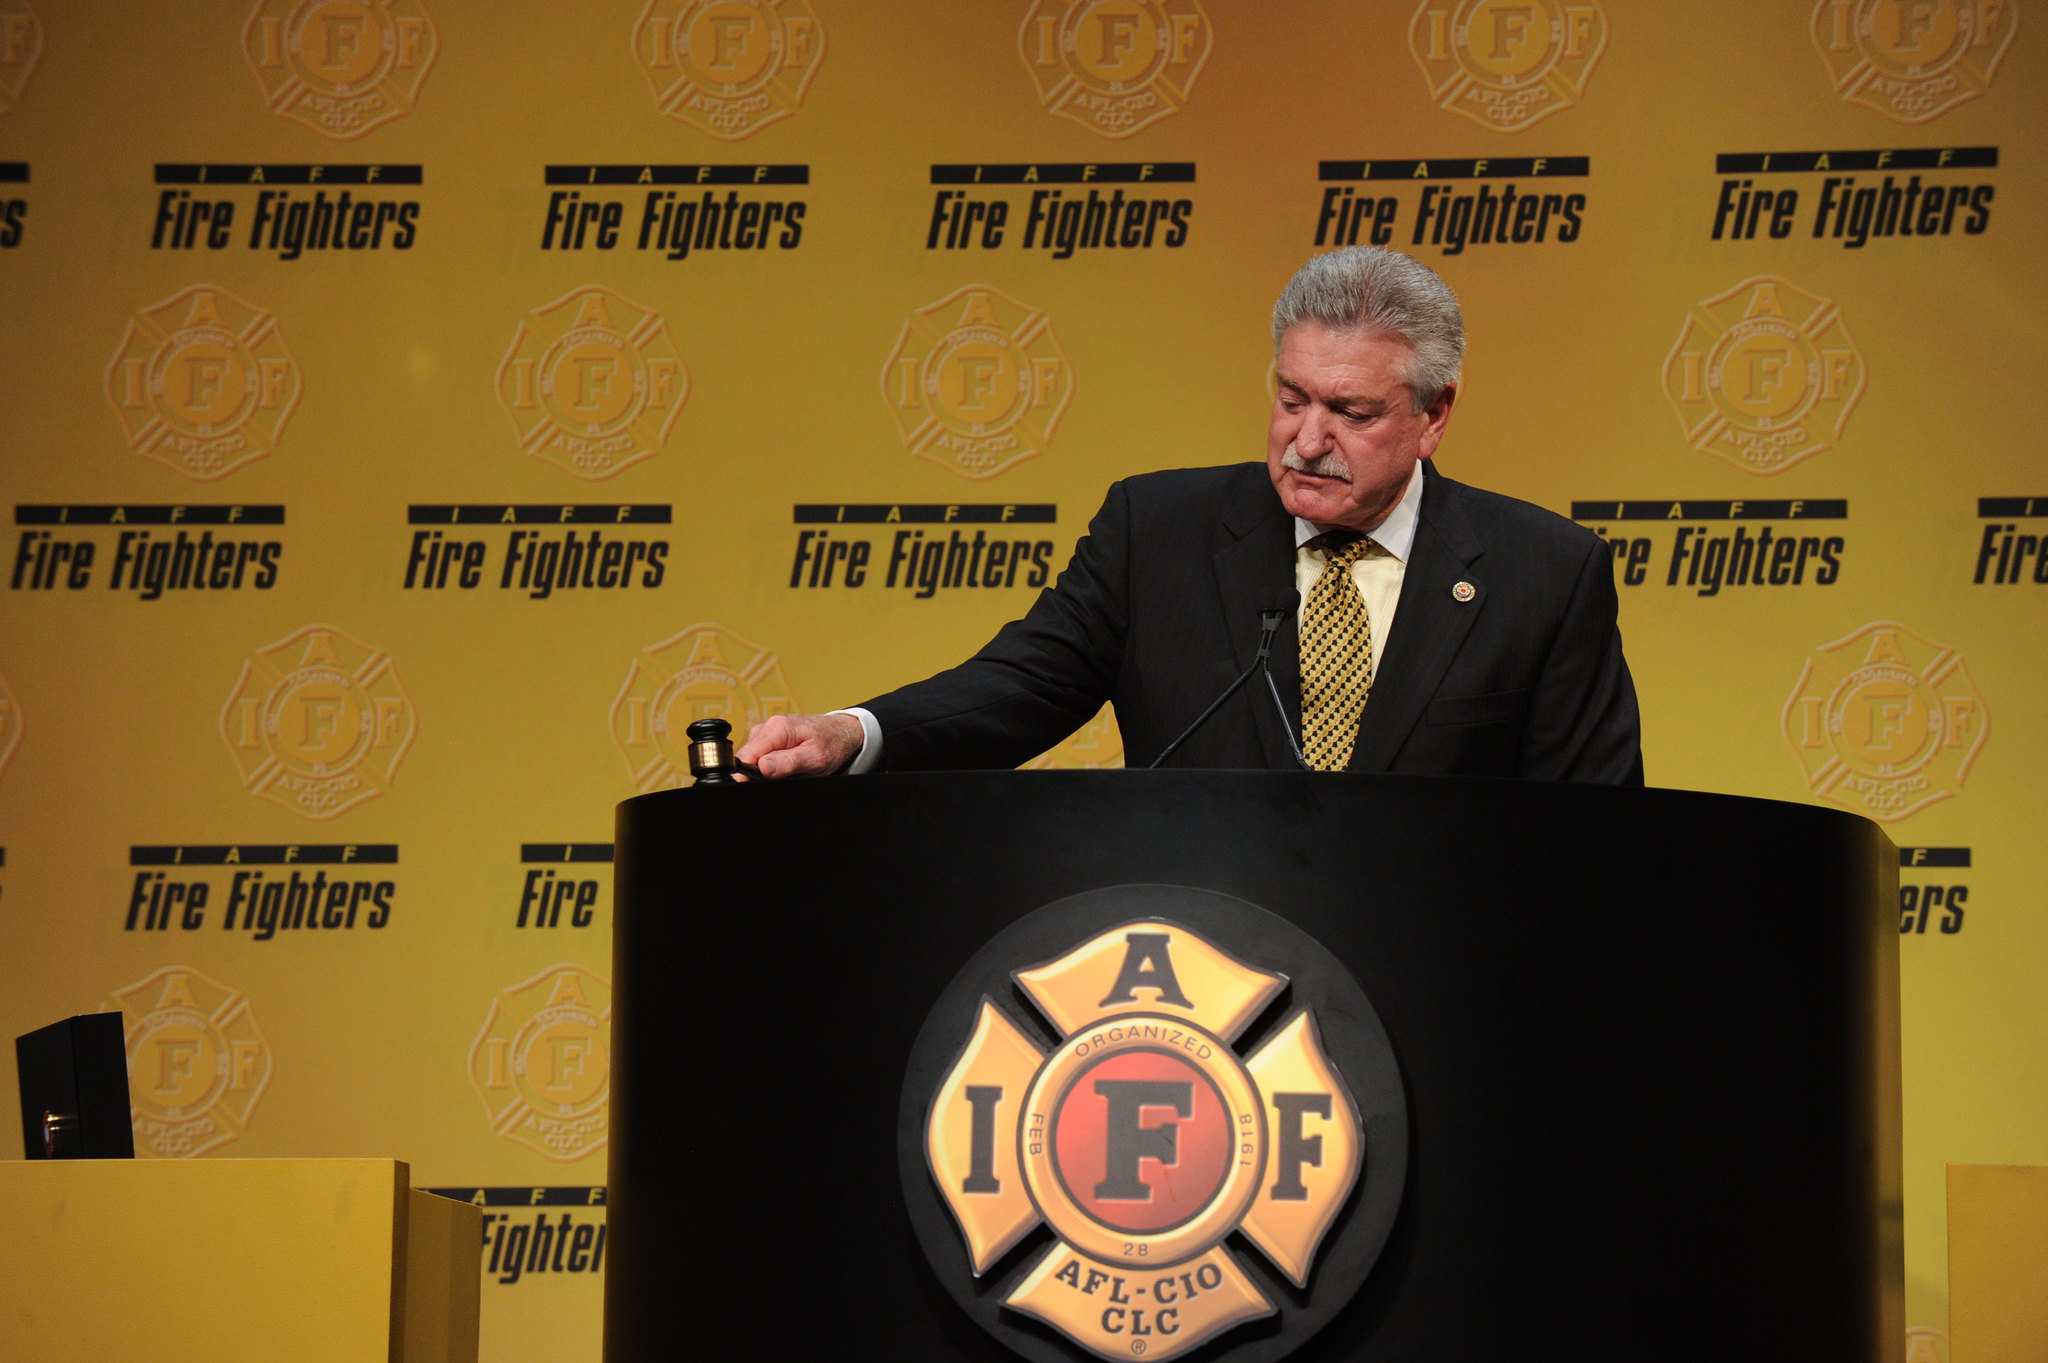 The Fitch Files: Why is the International Association of Fire Fighters getting millions from a charity?